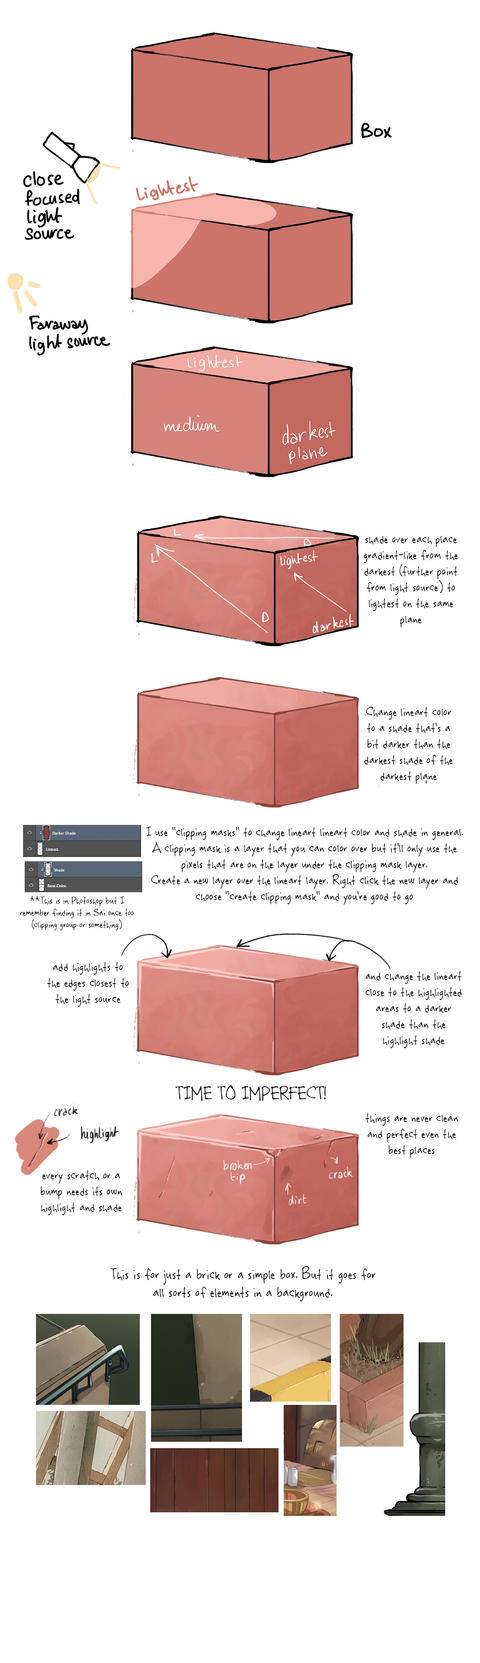 BG painting tips by deeJuusan